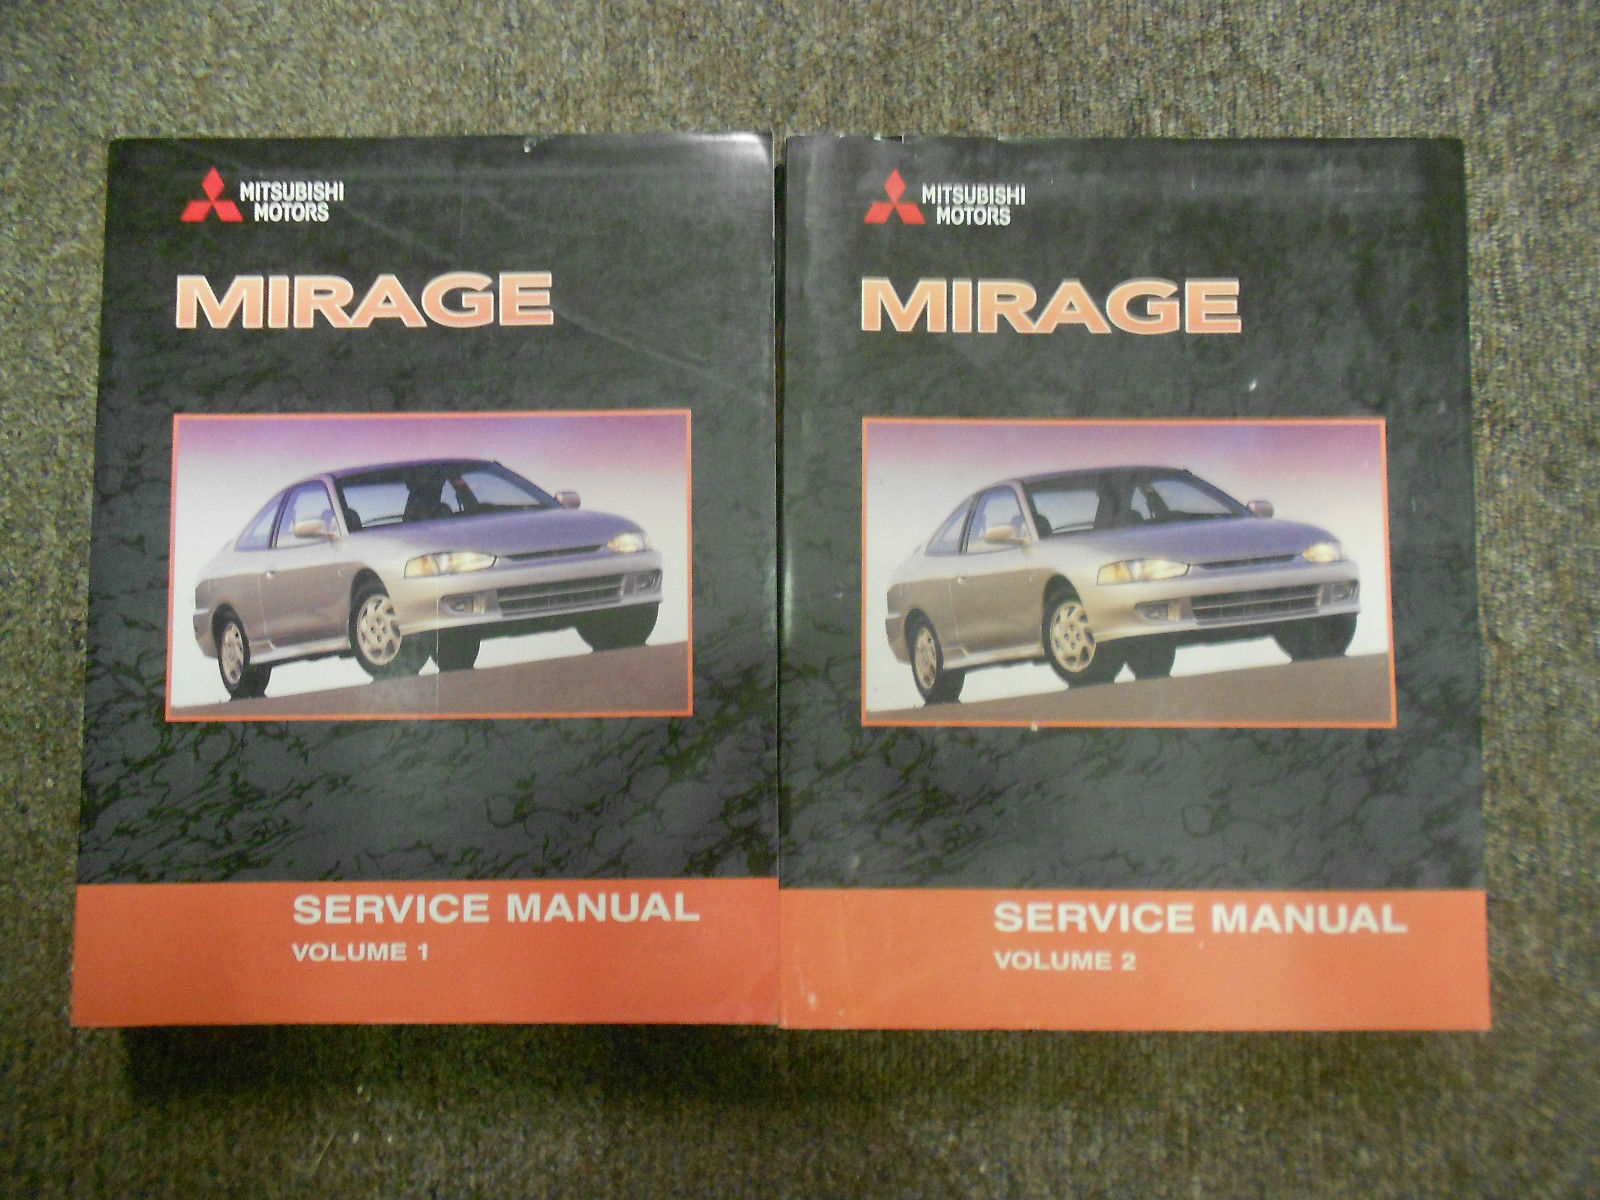 2002 MITSUBISHI Mirage Service Repair Shop Manual SET 2 VOL FACTORY OEM BOOK x